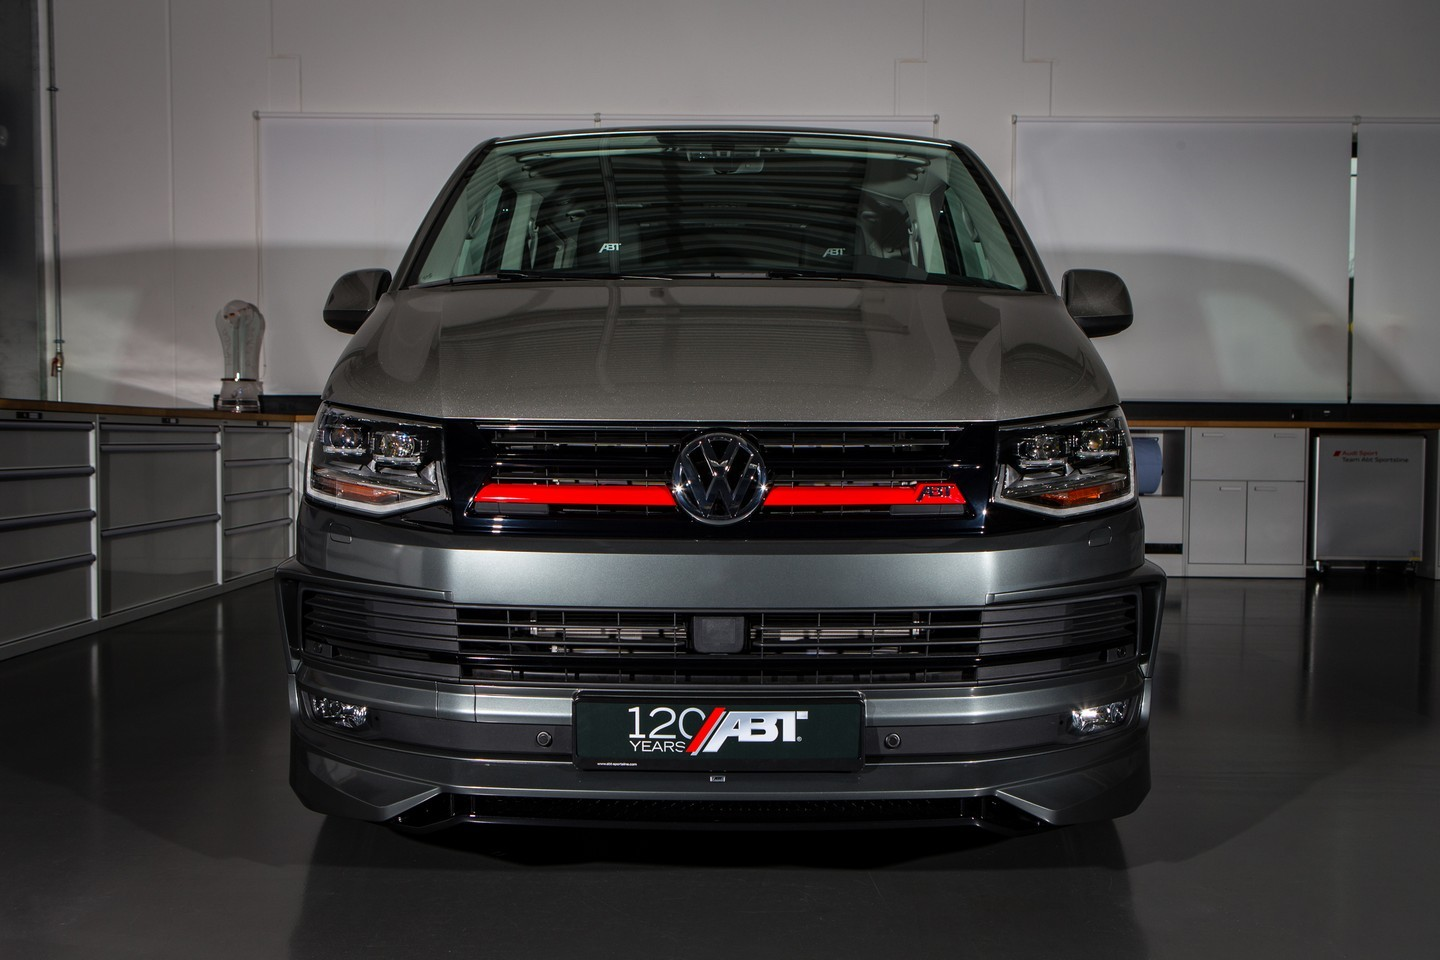 ABT Makes Coolest Volkswagen T6 Tuning Project for Geneva ...